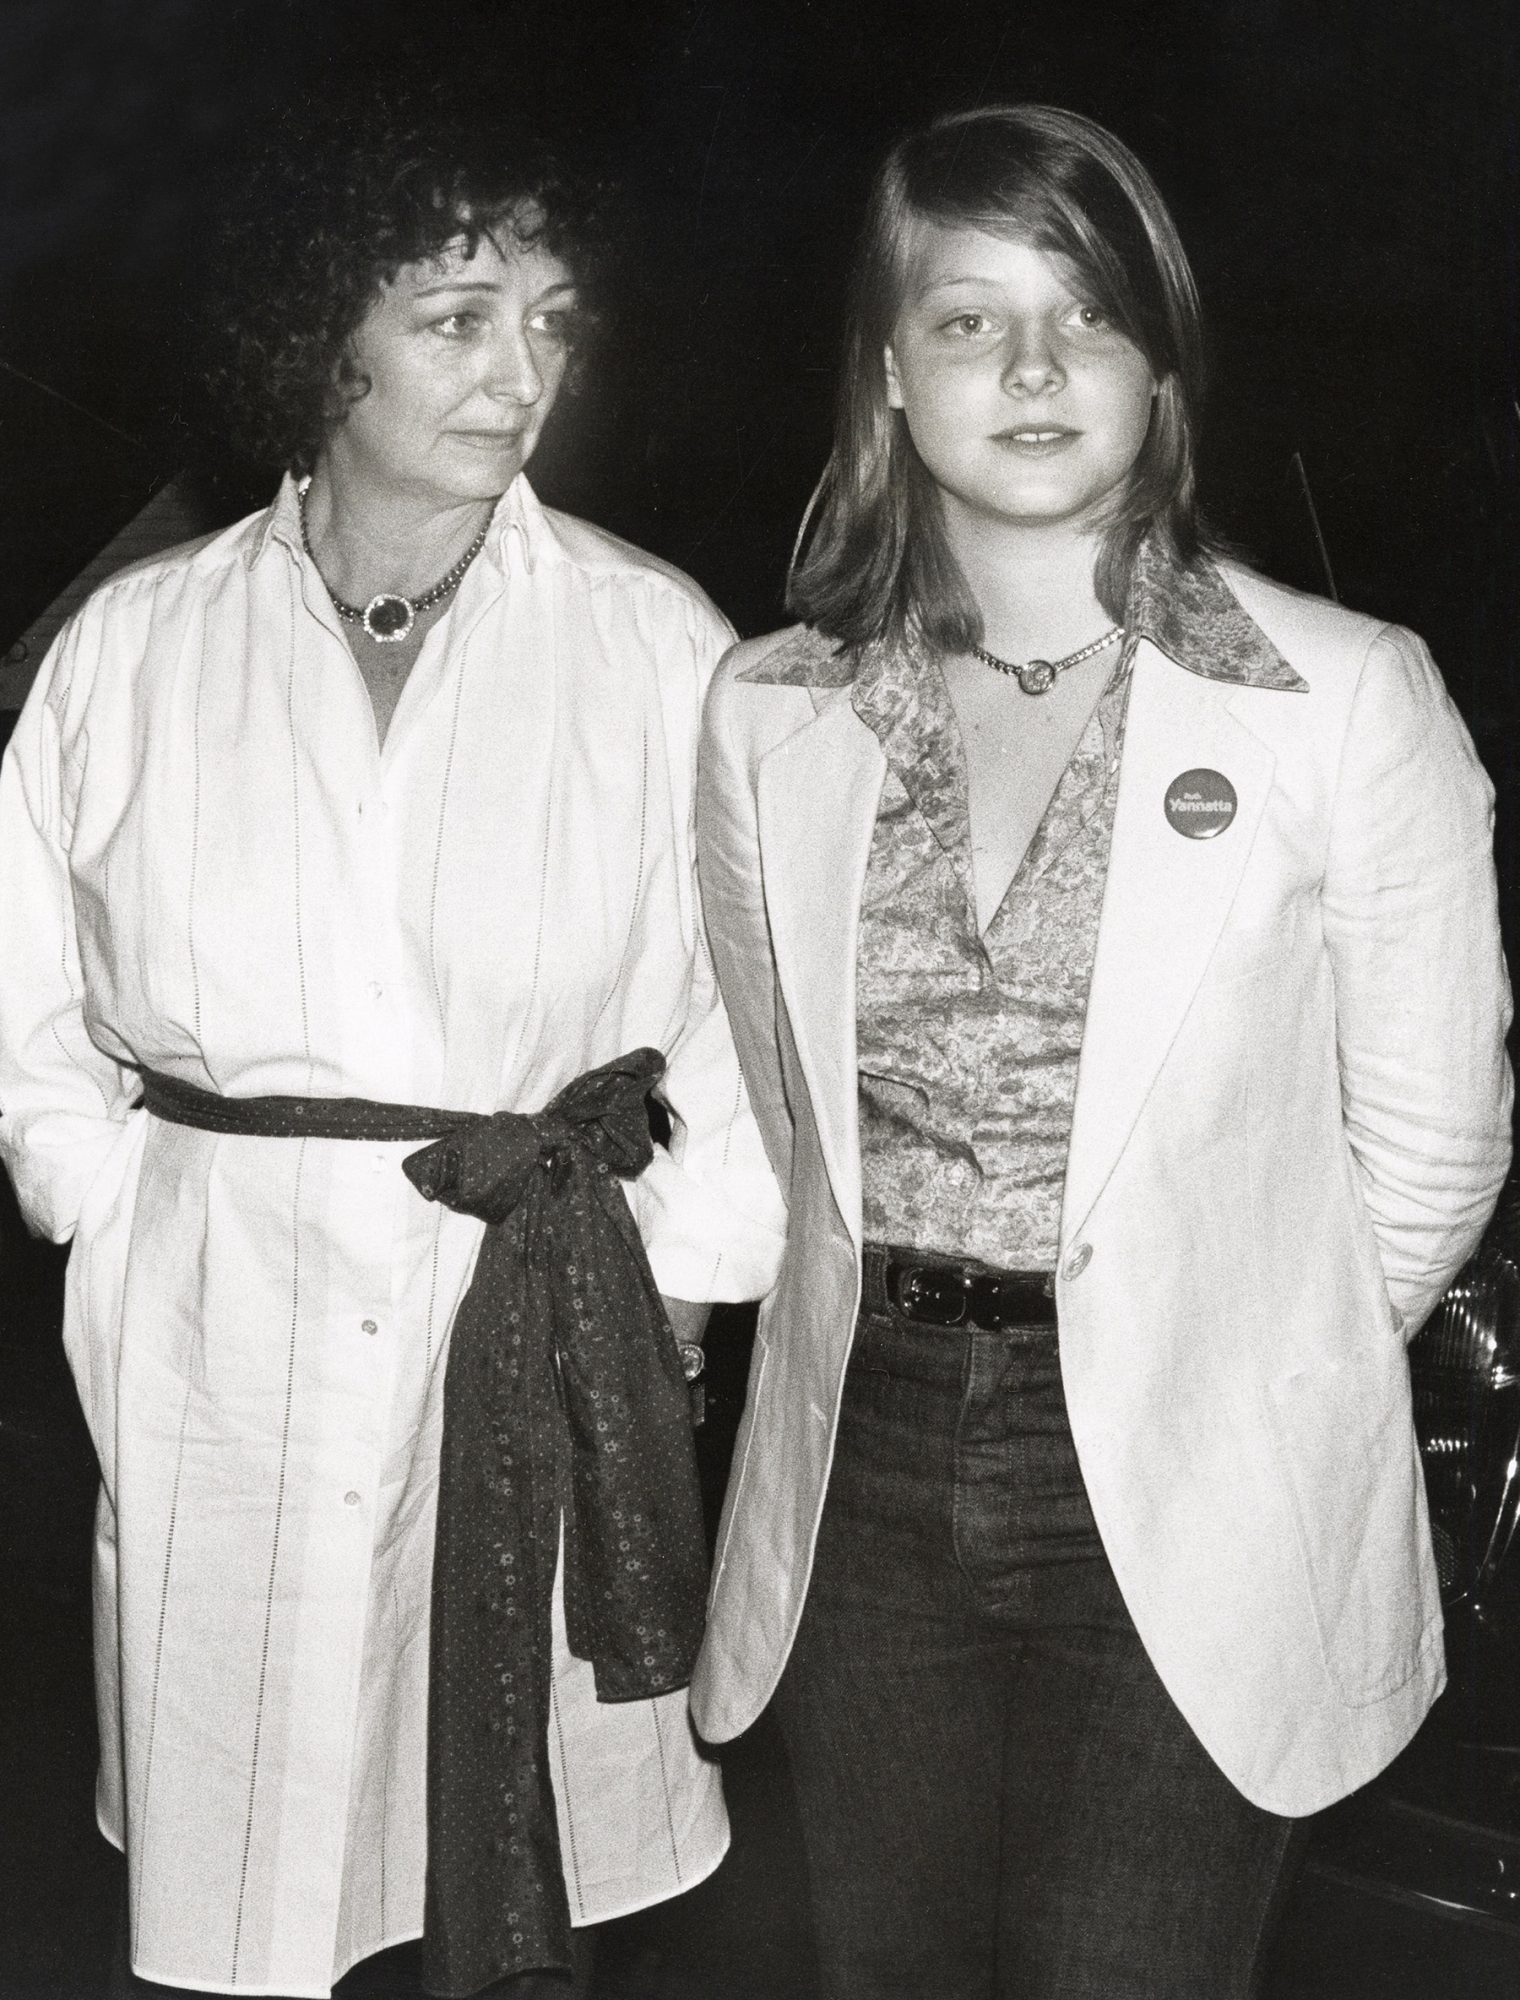 Evelyn Foster and Jodie Foster